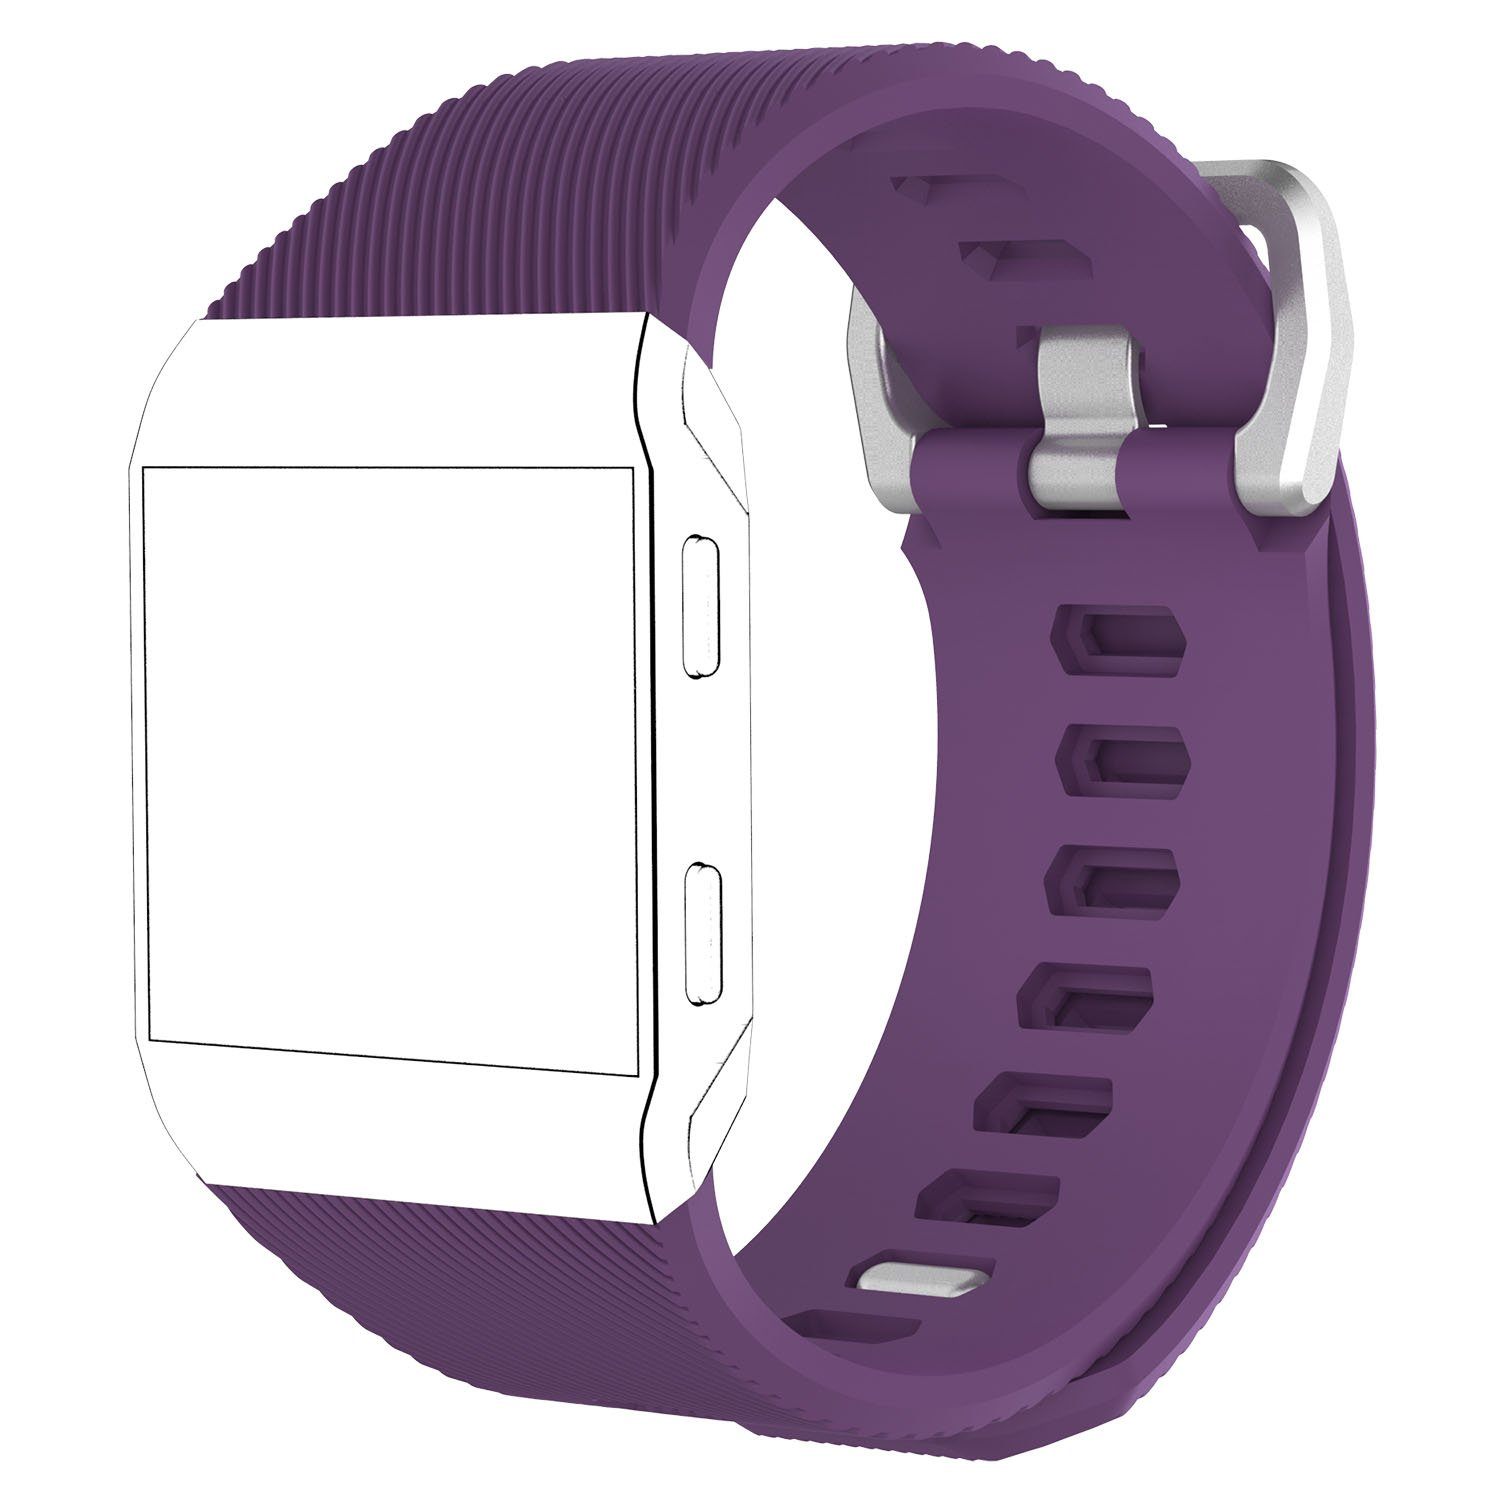 QGHXO Band for Fitbit Ionic No Tracker Soft Silicone Adjustable Replacement Sport Strap Band for Fitbit Ionic Smartwatch